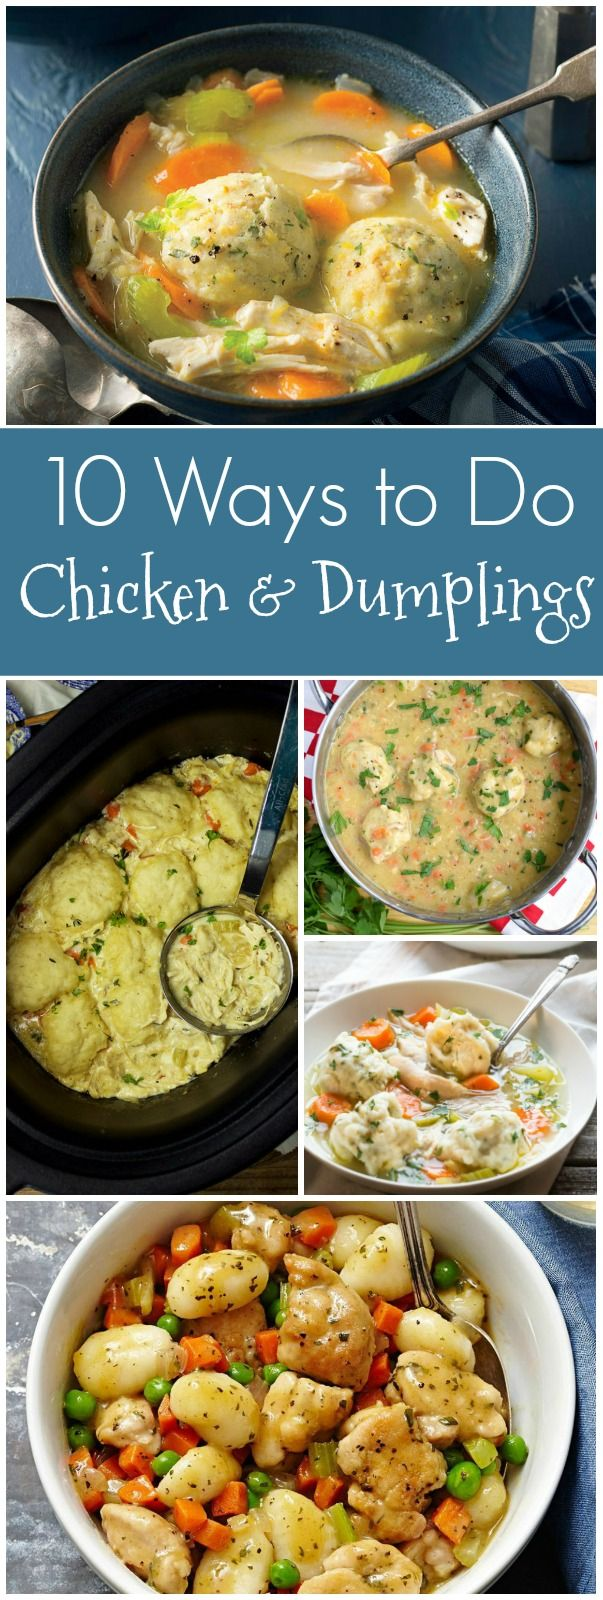 Recipes for Classic Chicken and Dumplings, Paleo Chicken and Dumplings, Chicken and Dumpling Casserole, Chicken and Dumpling Soup, Clean Eating Chicken and Dumplings, Chicken and Cornmeal Herb Dumplings, Gluten Free Chicken and Dumplings and more!